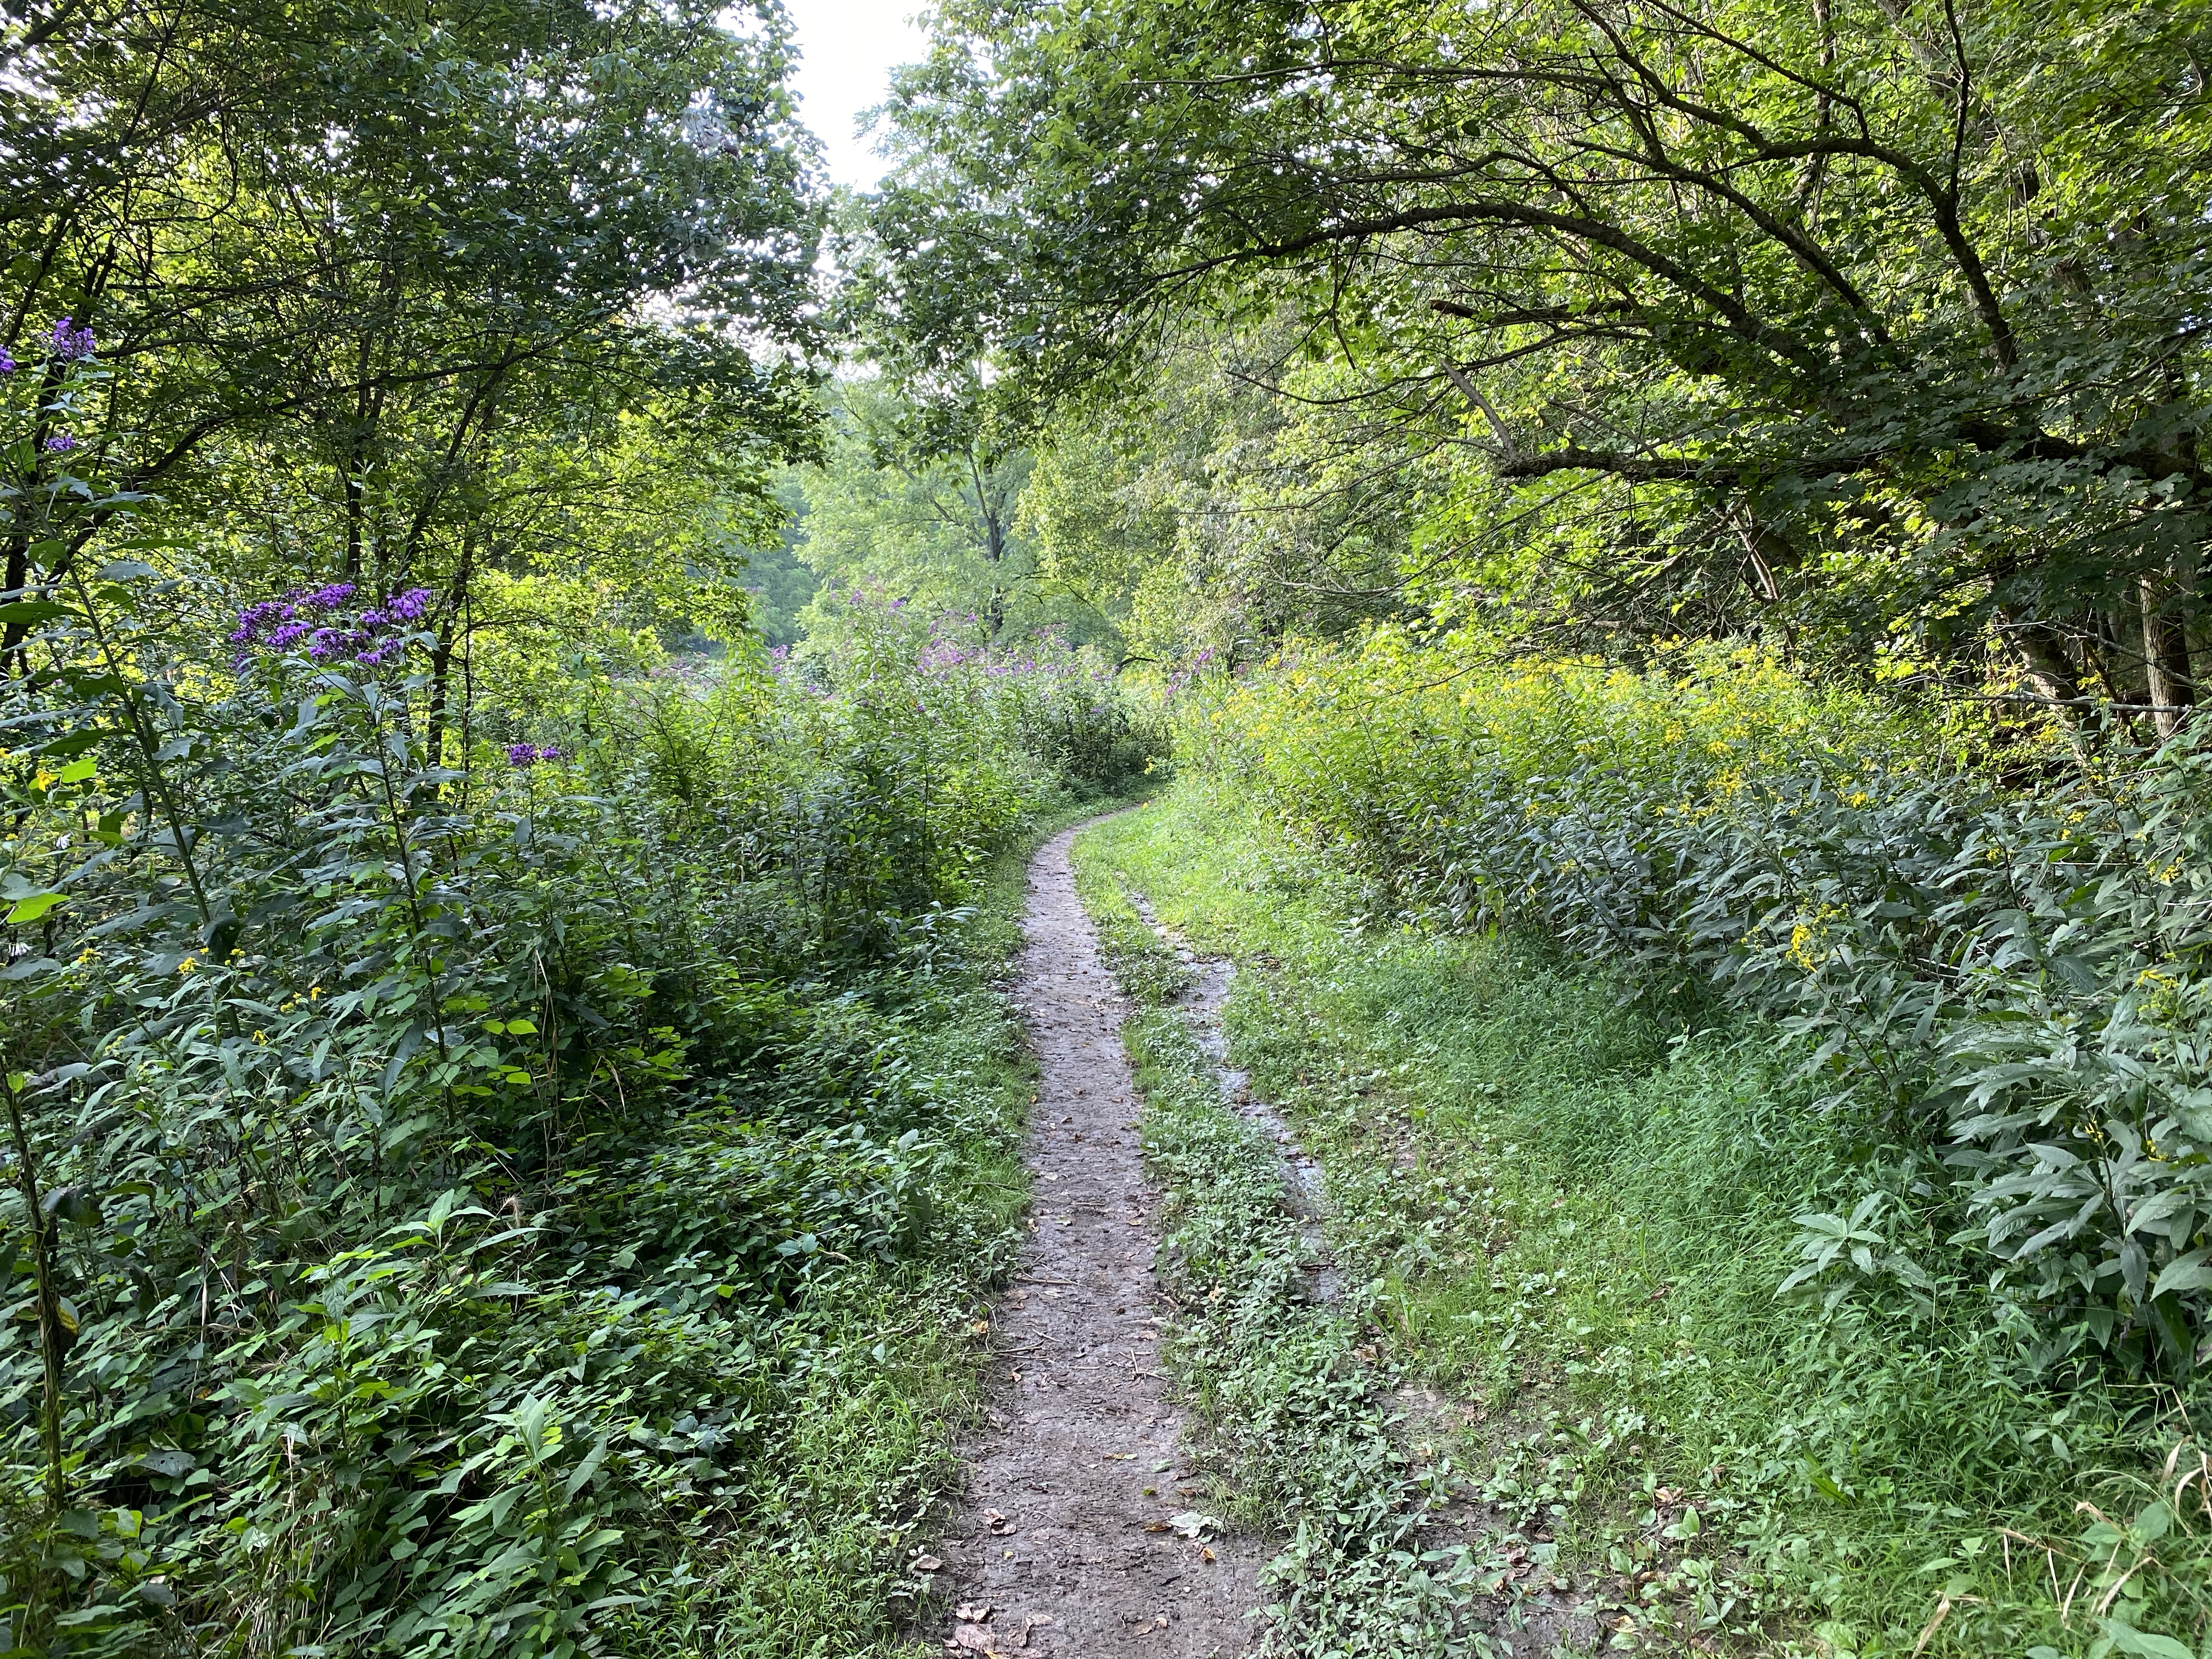 A gravel trail cuts through a grassy field with trees on either side.